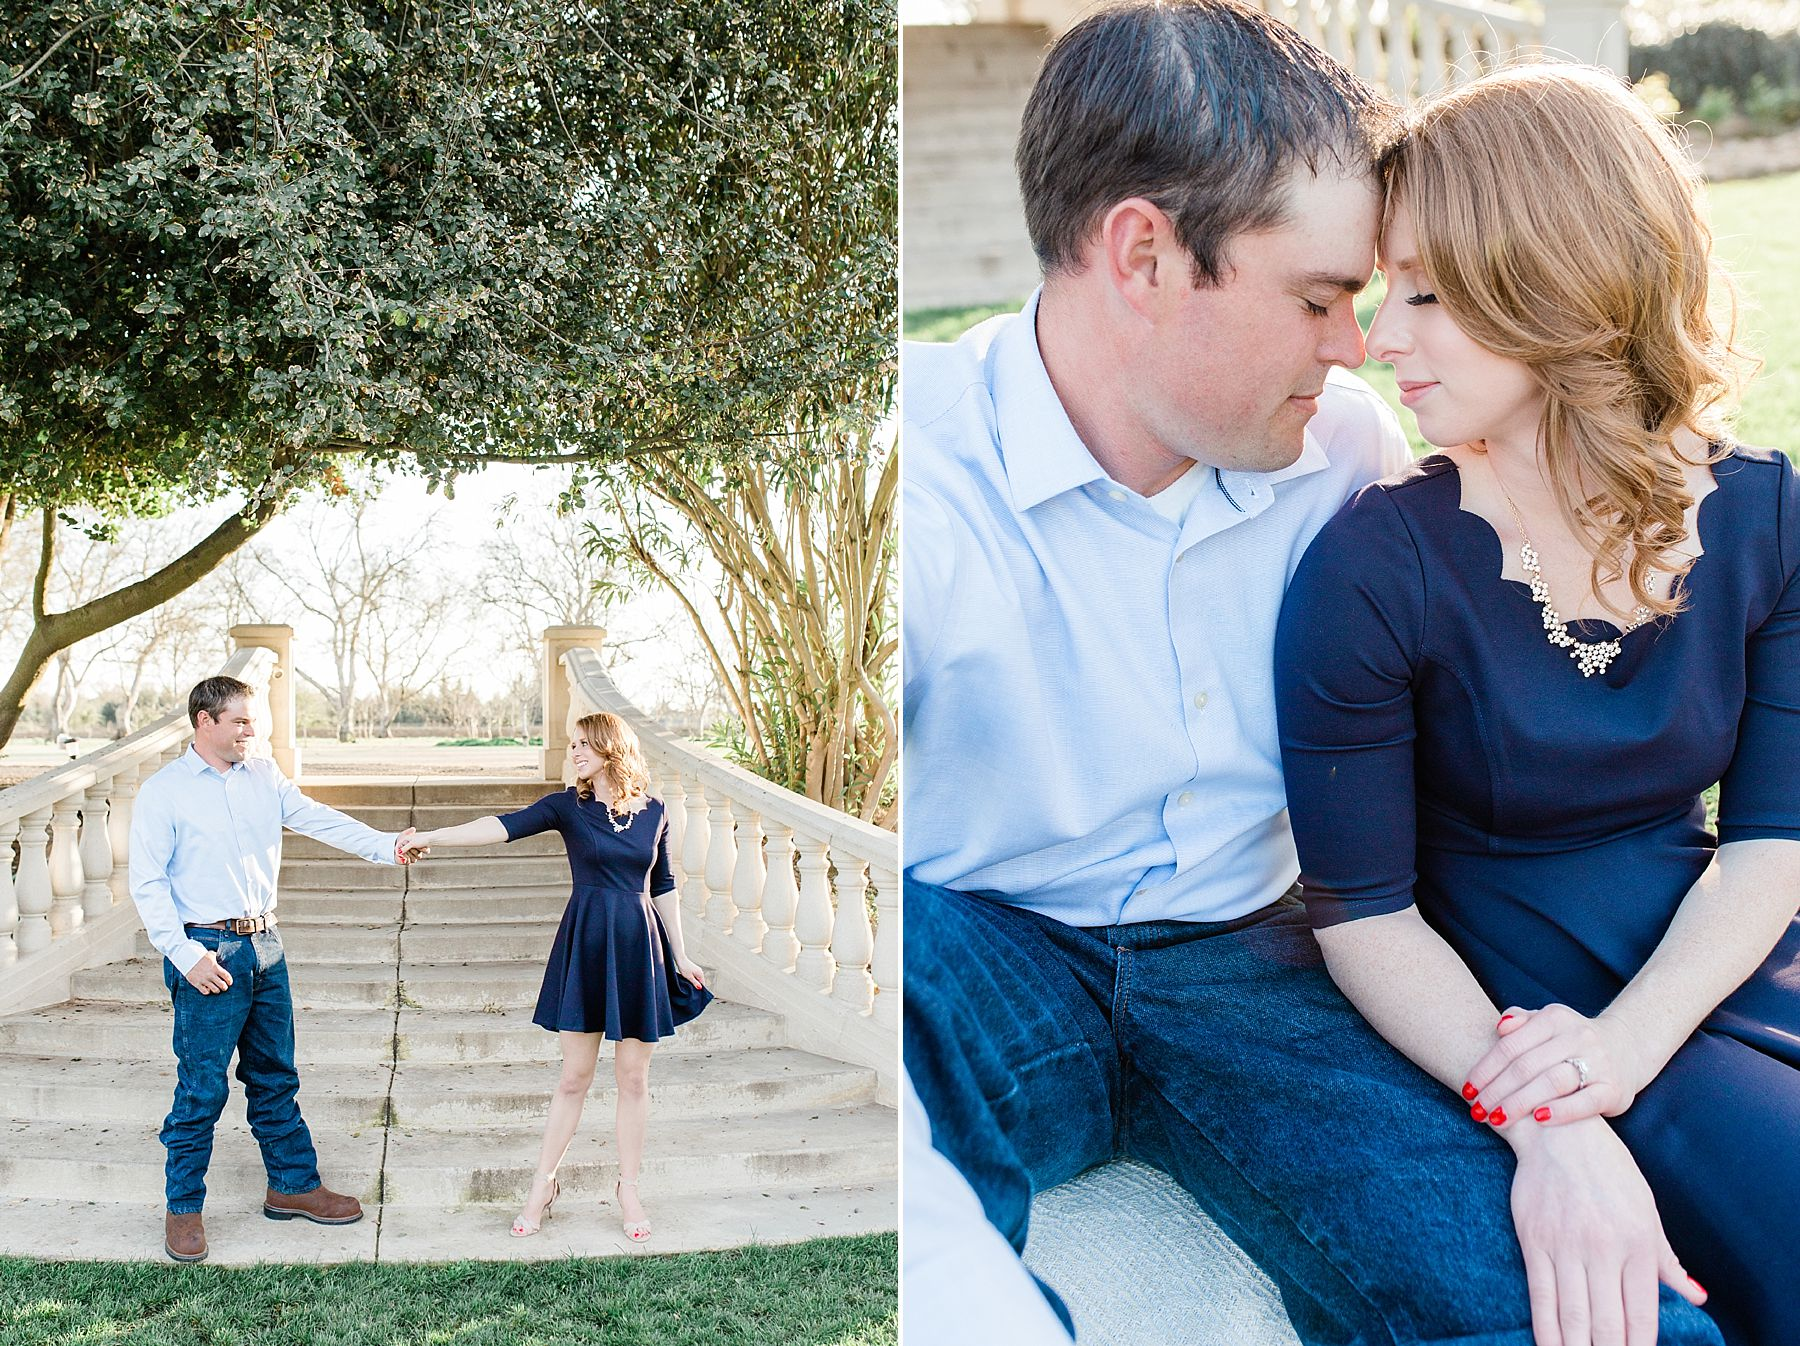 Viaggio Winery Engagement Session - Liz and TJ - Lodi Winery Wedding Photographer_0004.jpg